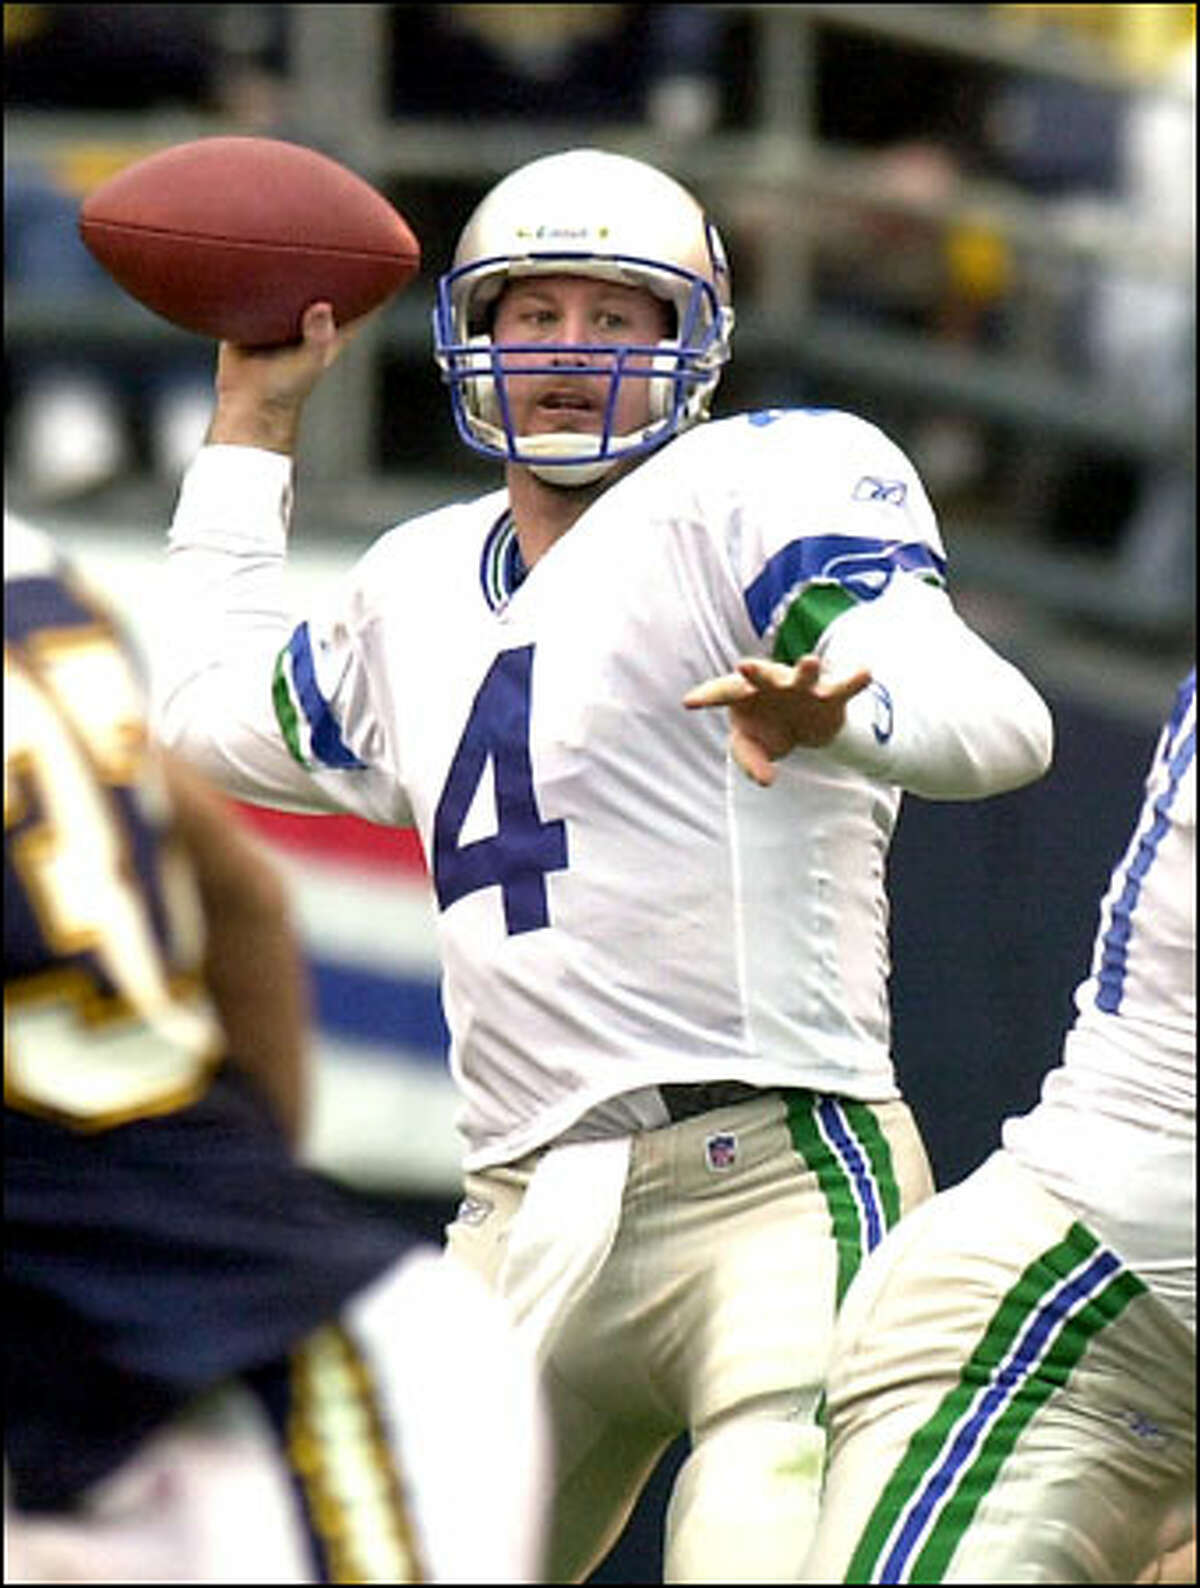 Trent Dilfer aims a pass, one of 23 attempted against the Chargers. He completed 14 for 267 yards and three TDs. Dilfer is 3-0 as the Seahawks starter and has won 14 games in a row.